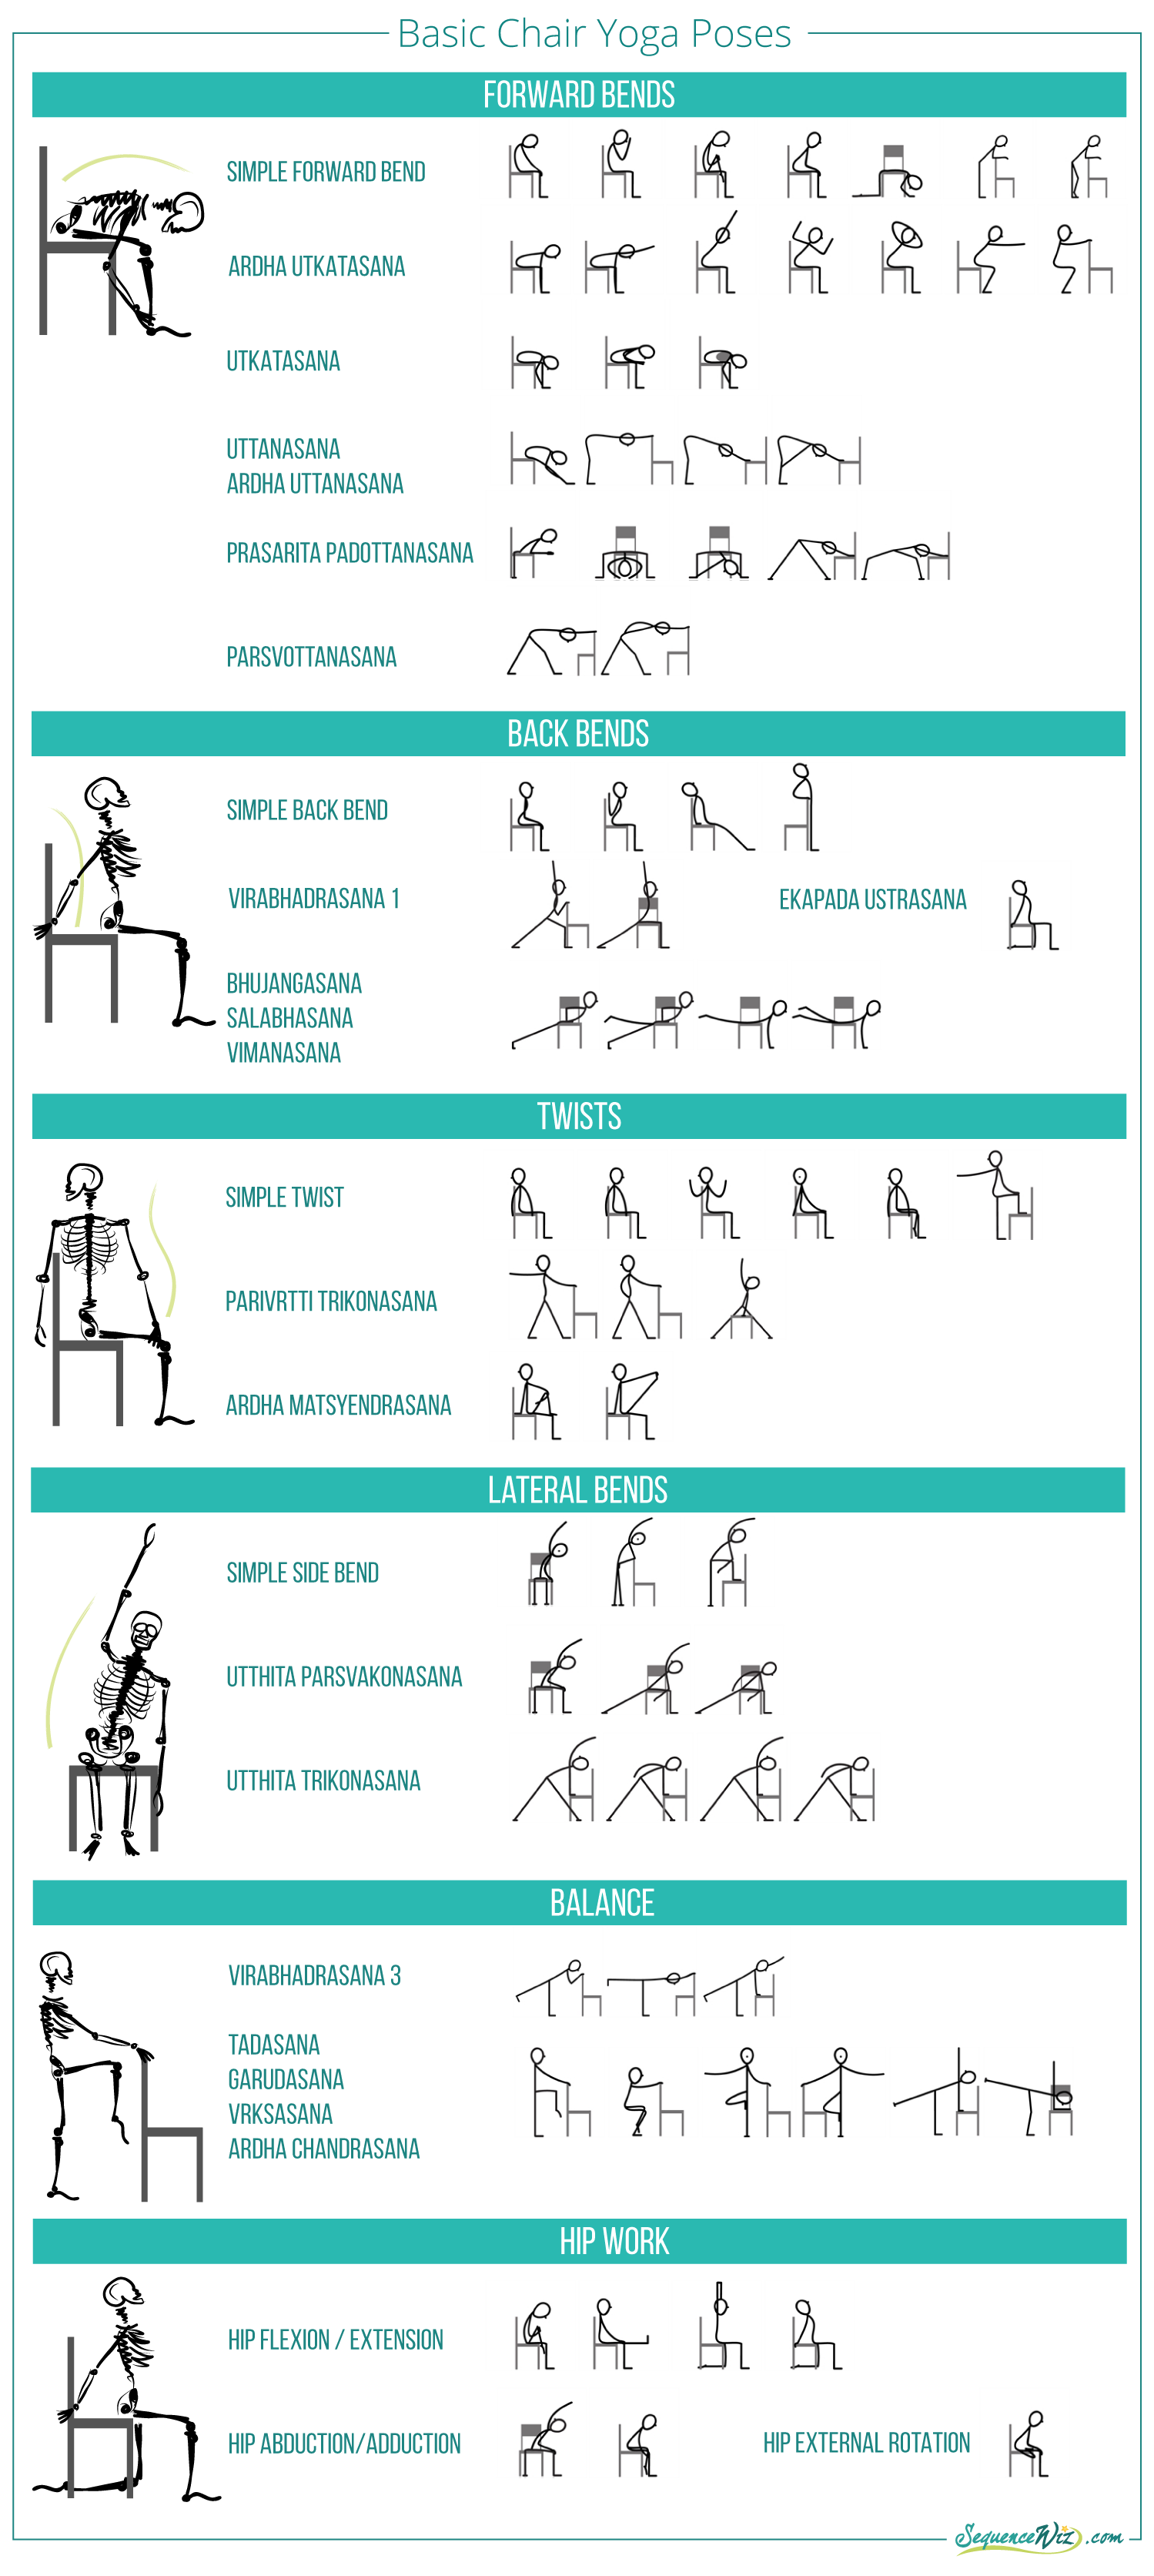 image regarding Printable Chair Yoga Routines named A checklist of very simple chair yoga poses - Series Wiz